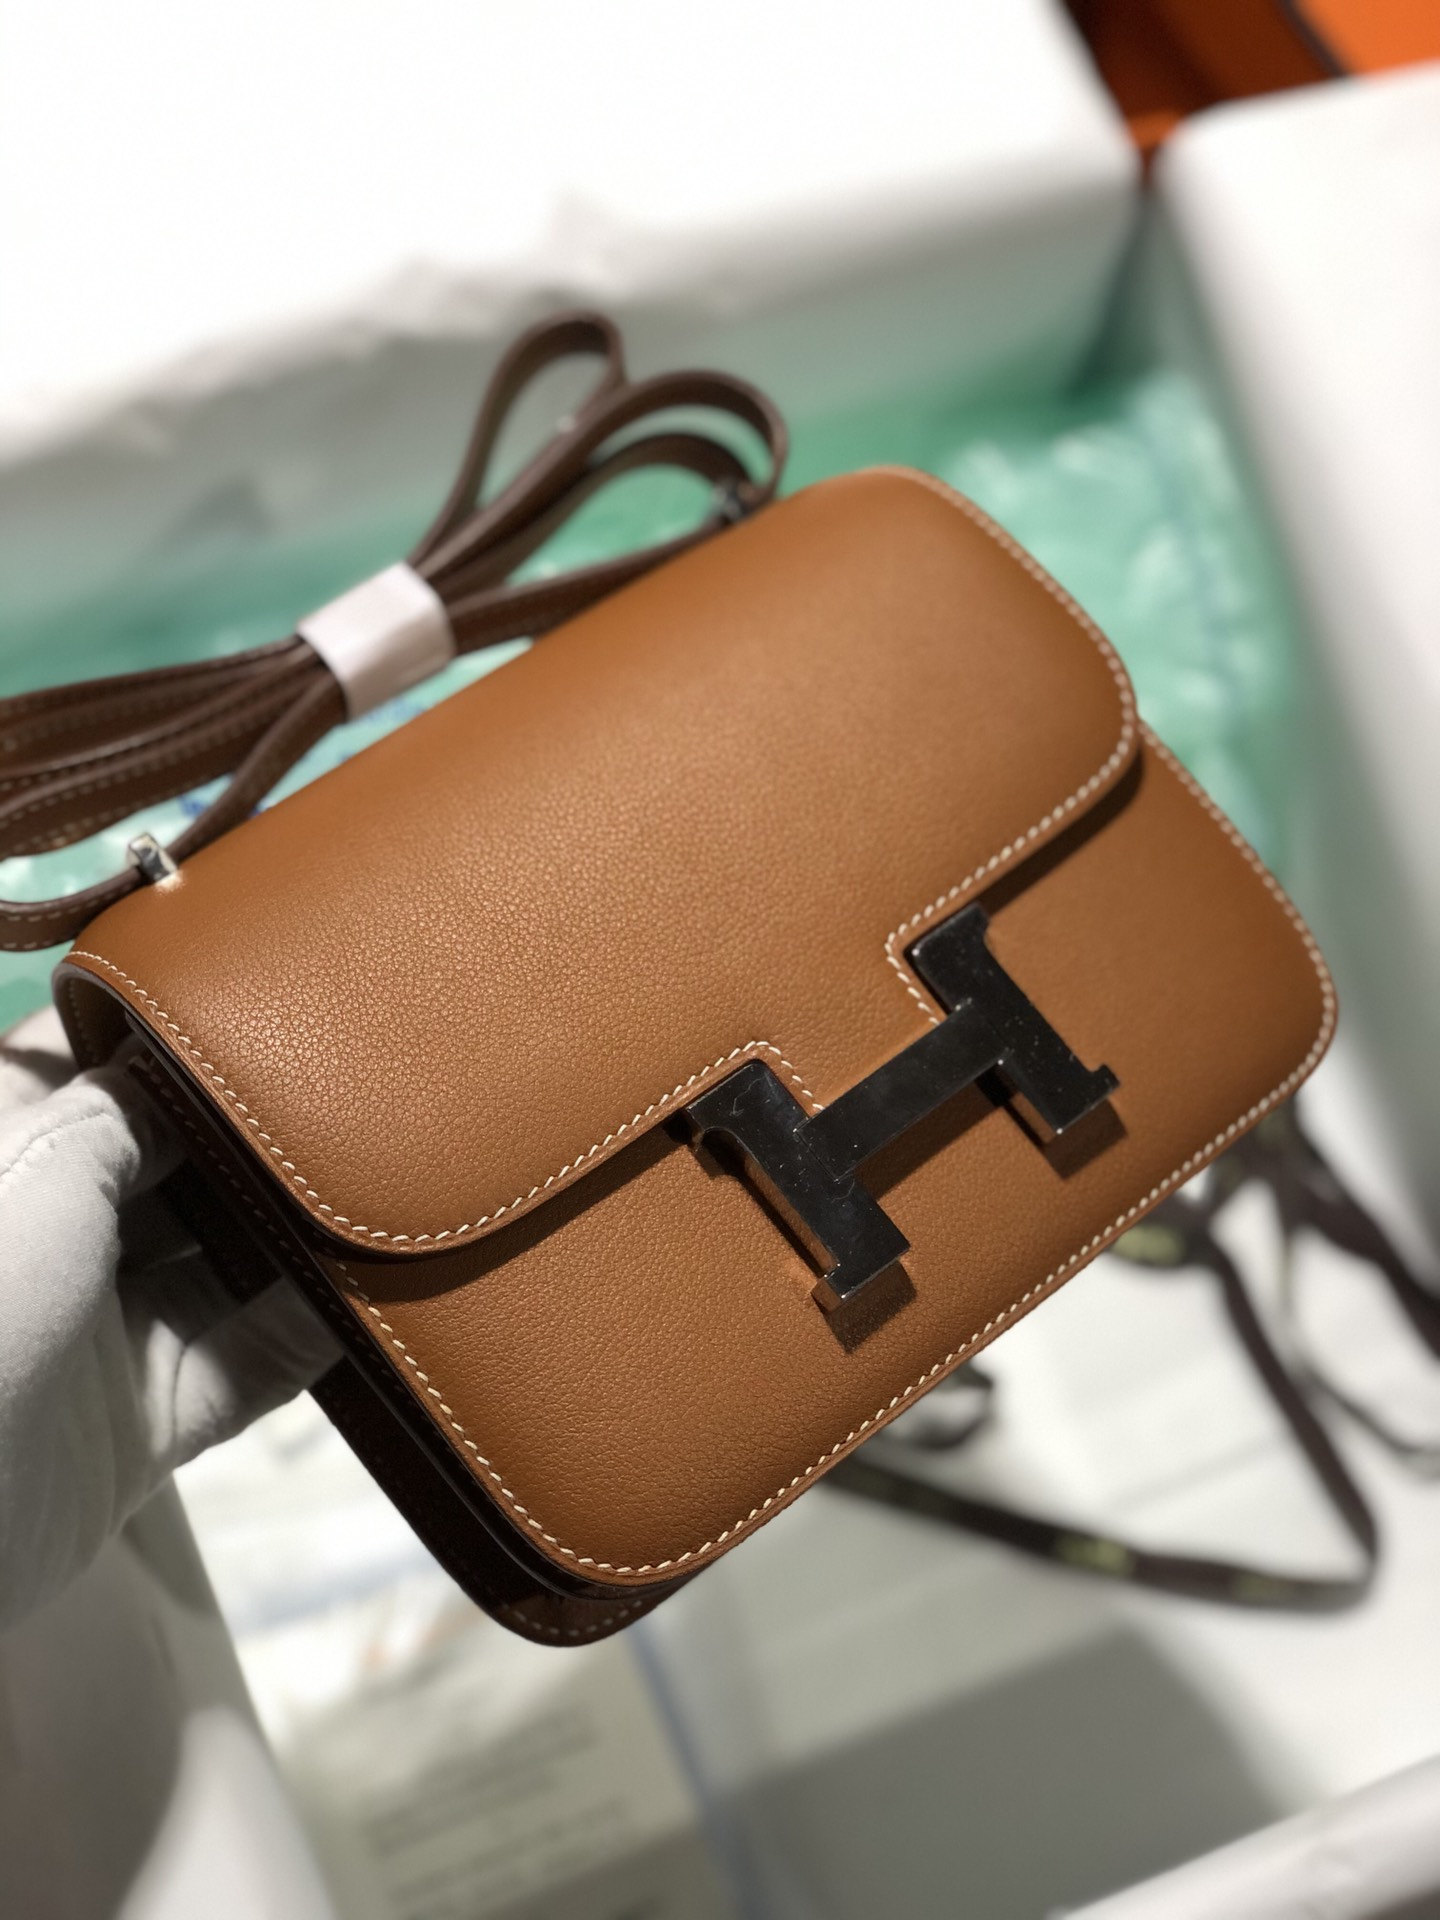 Customize Hermes Evercolor Constance Bag18cm in CK37 Gold Silver Hardware